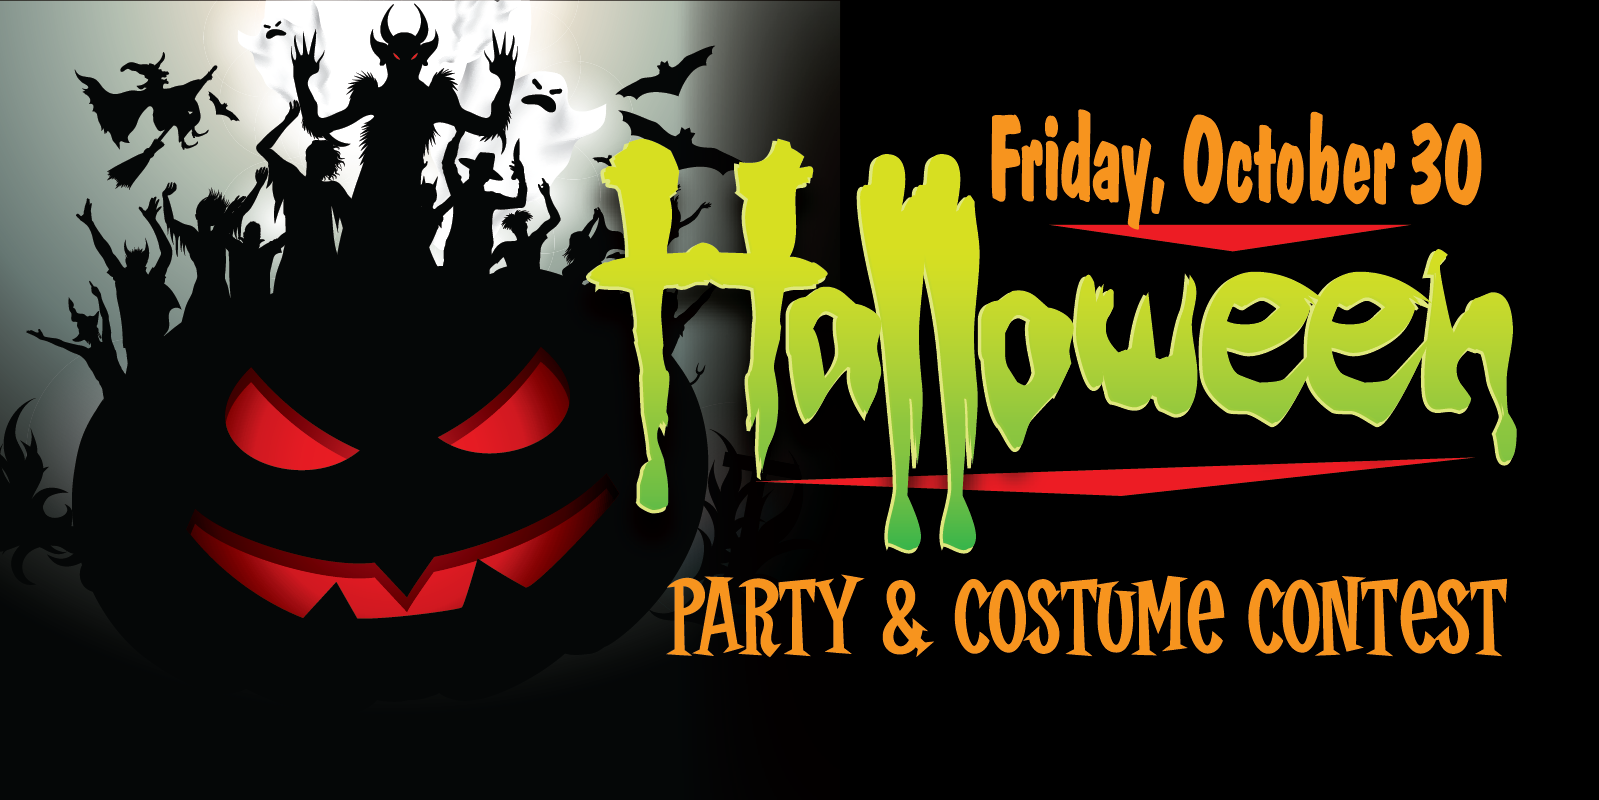 The Upper Peninsula's Best Halloween Party & Costume Contest!